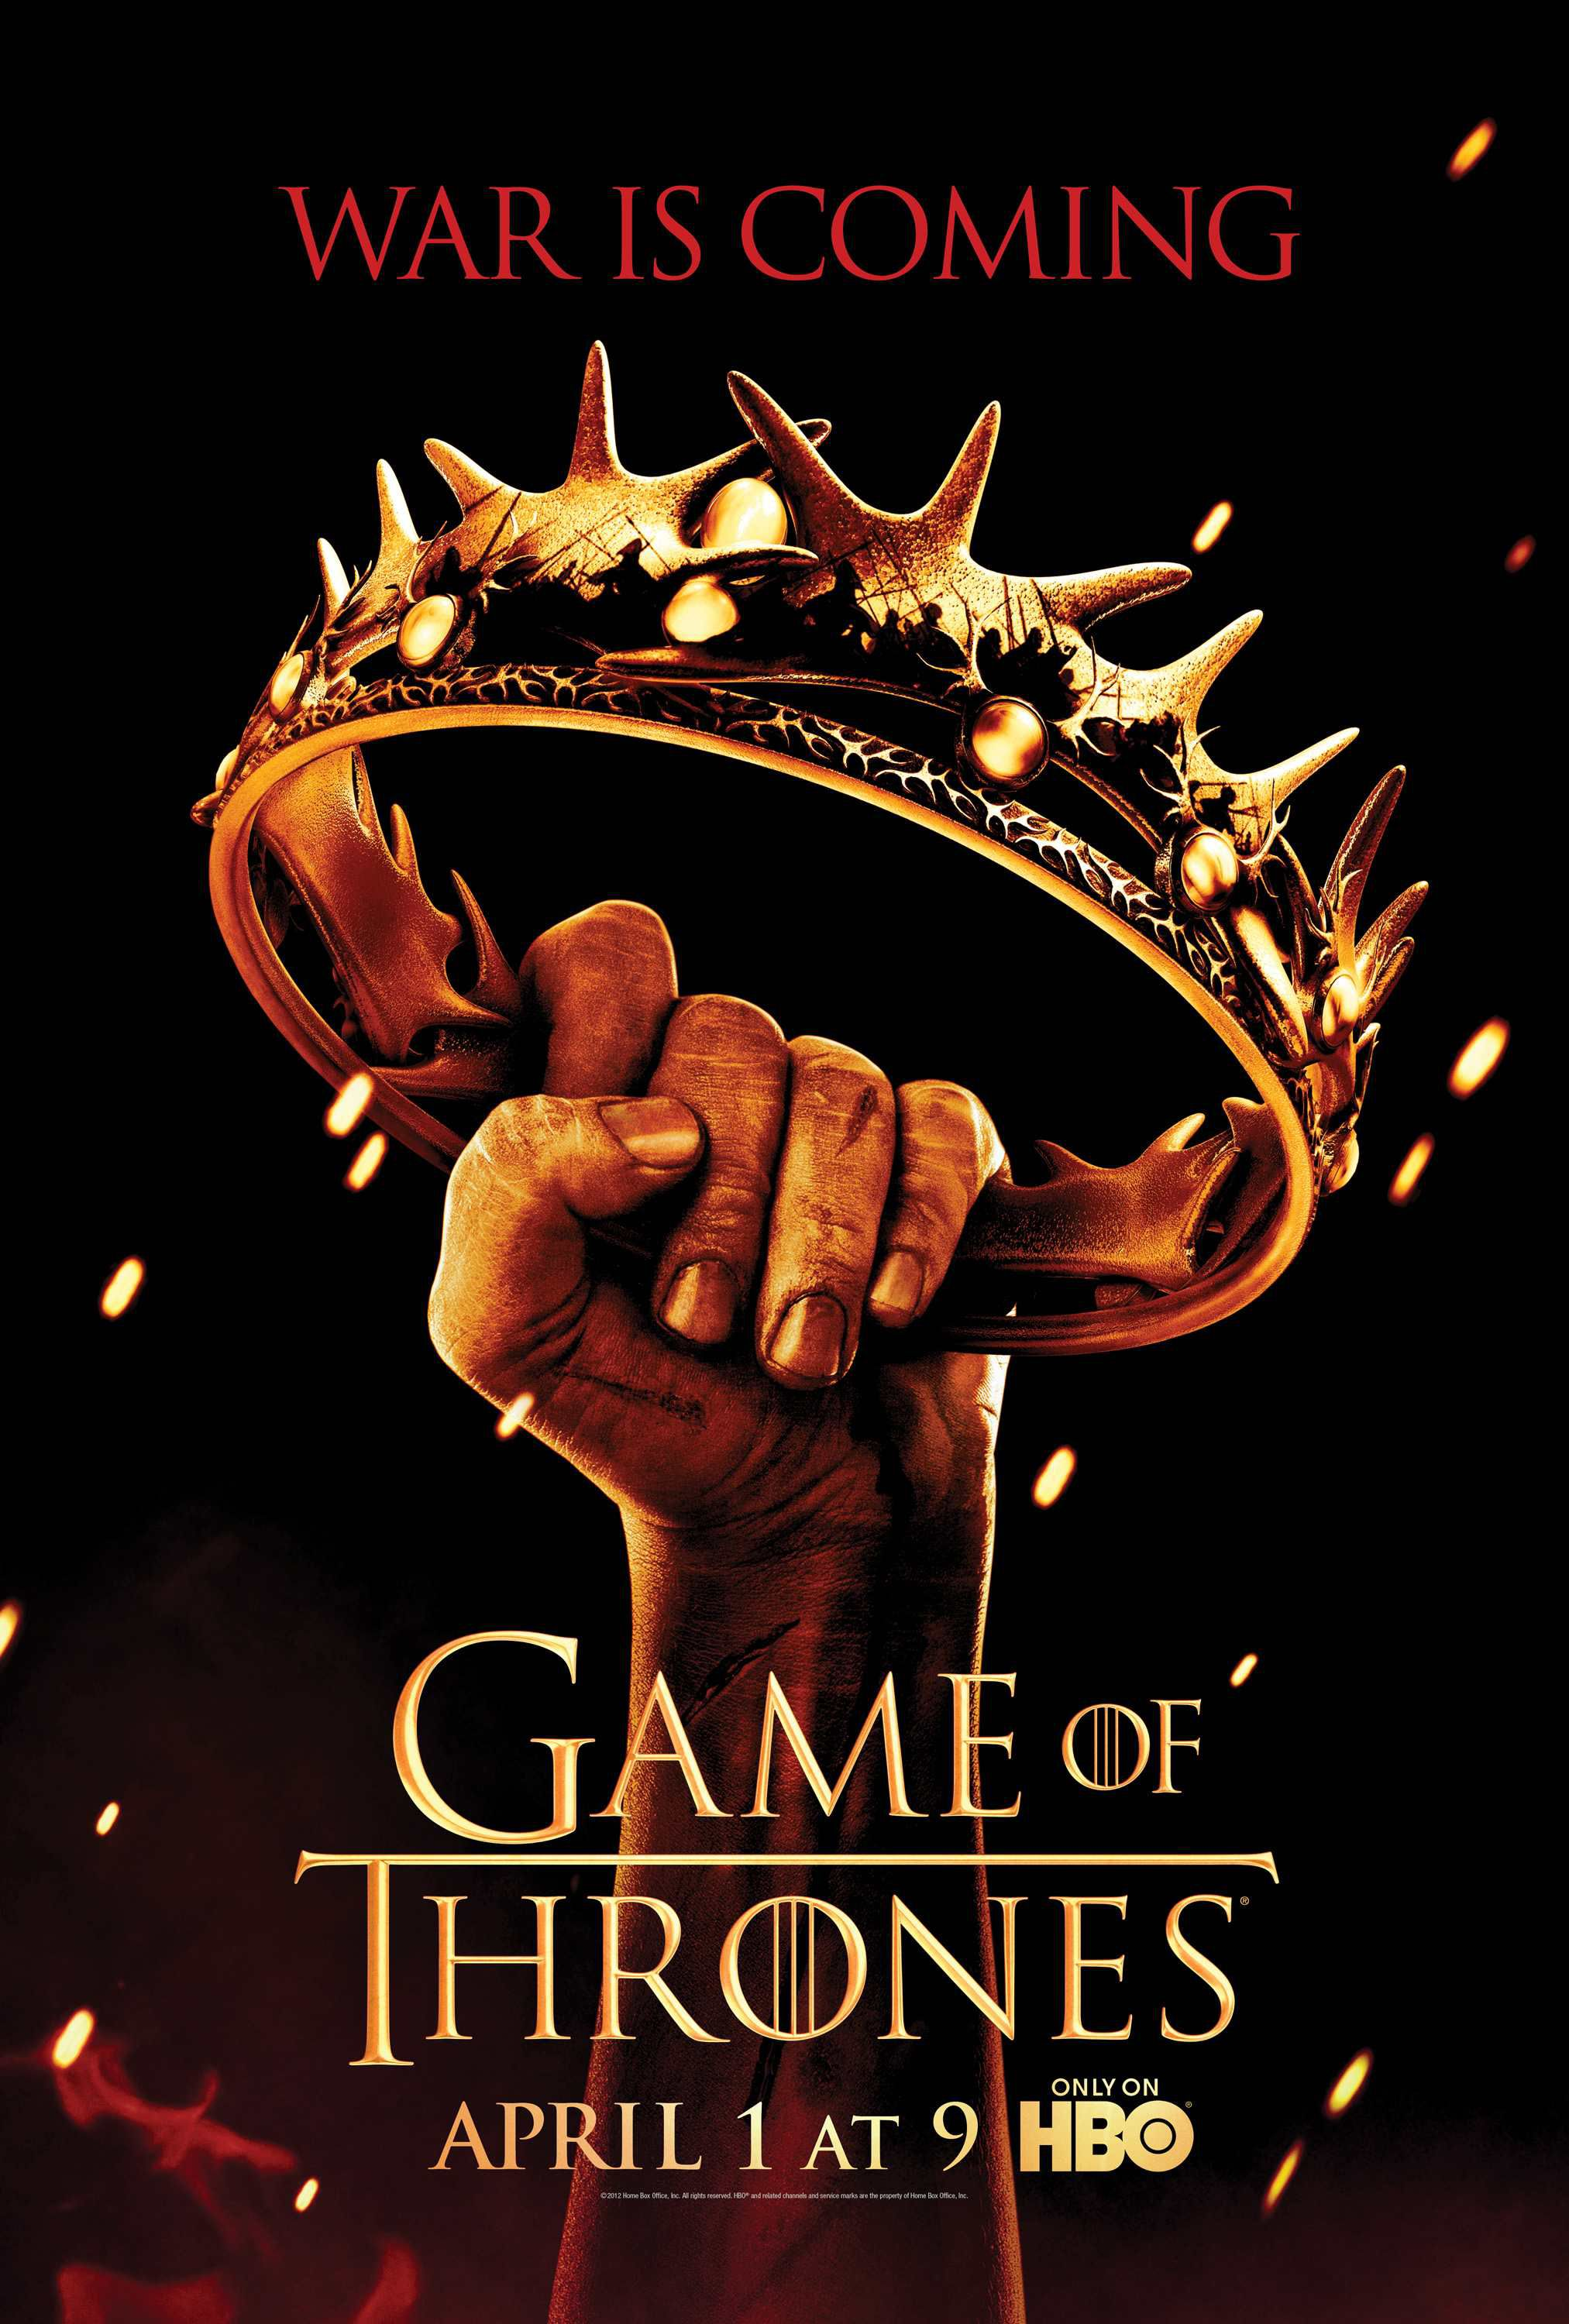 Game of Thrones History and Lore season 2 - Long-métrage d'animation (2013) streaming VF gratuit complet